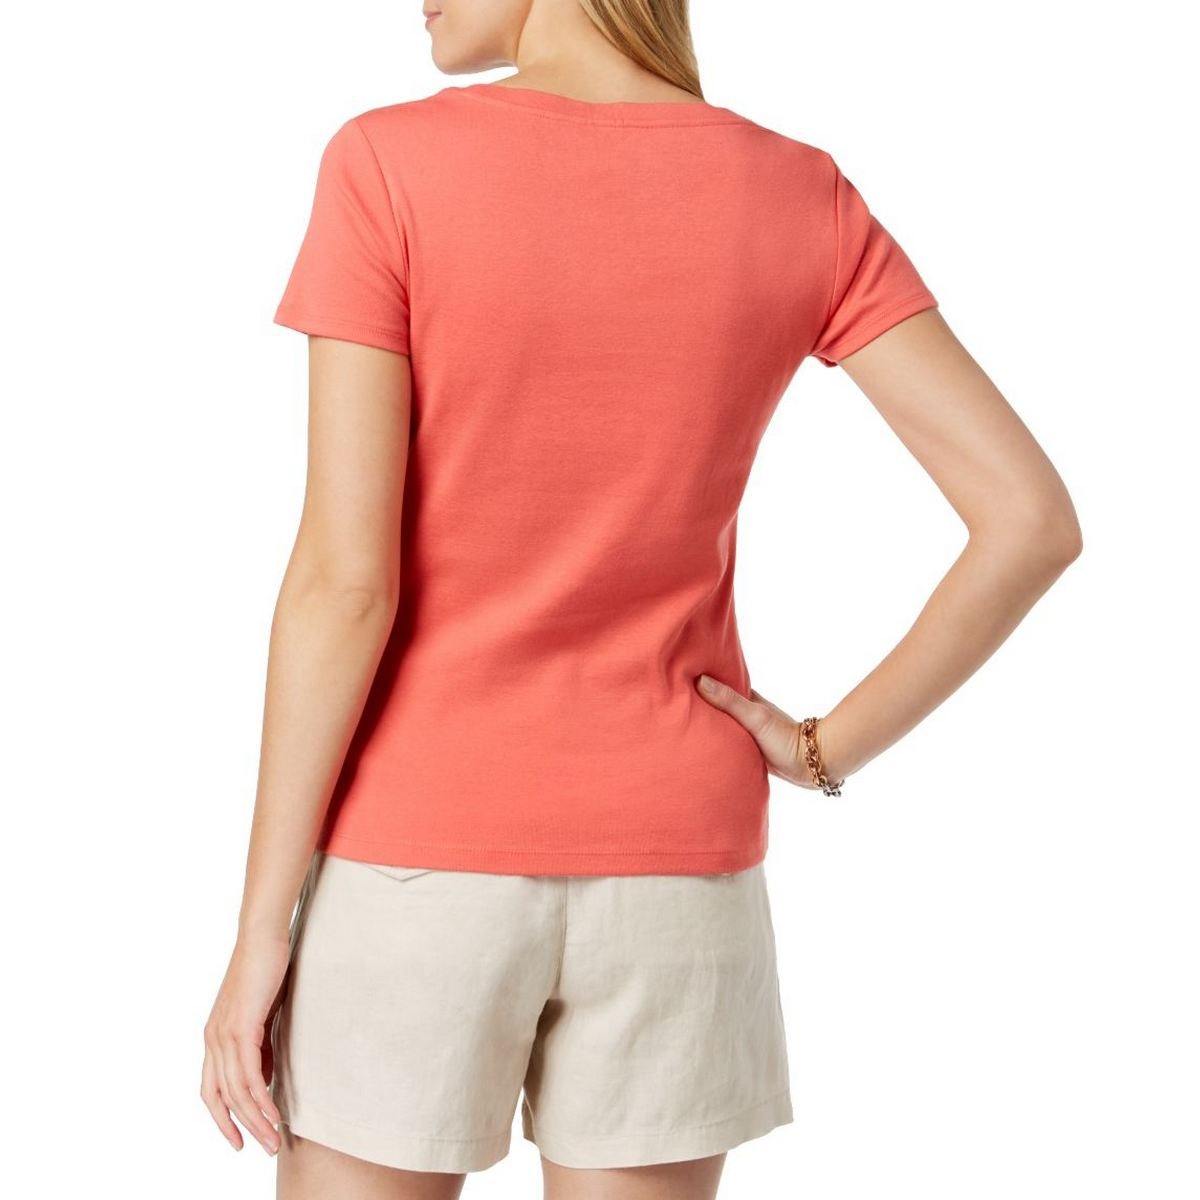 TOMMY-HILFIGER-NEW-Women-039-s-Cotton-Scoop-Neck-Casual-T-Shirt-Top-TEDO thumbnail 3